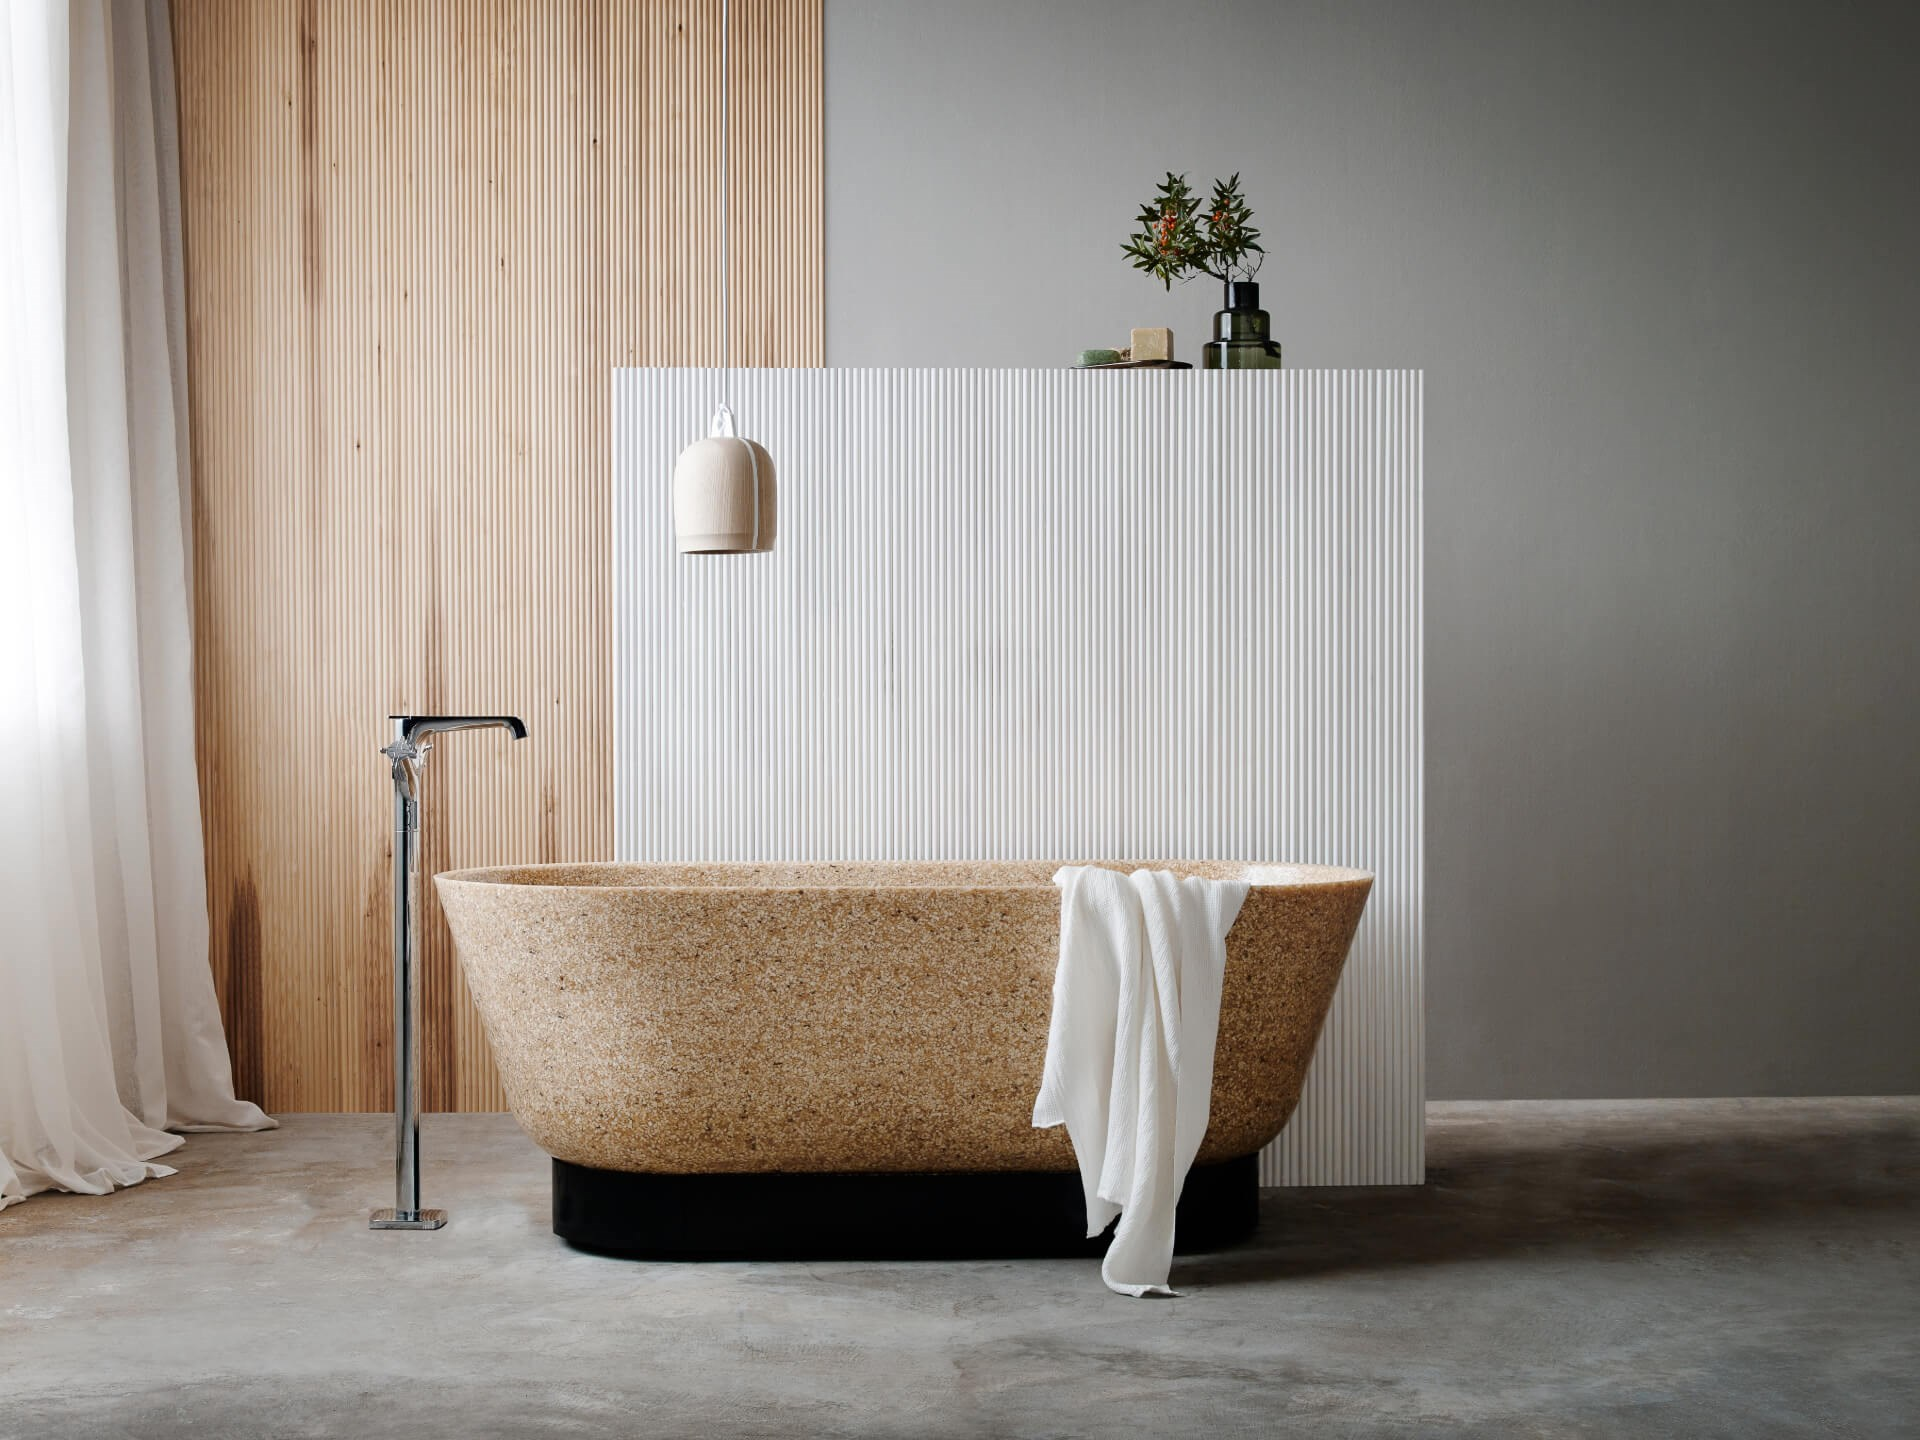 Woodio Flow bathtub